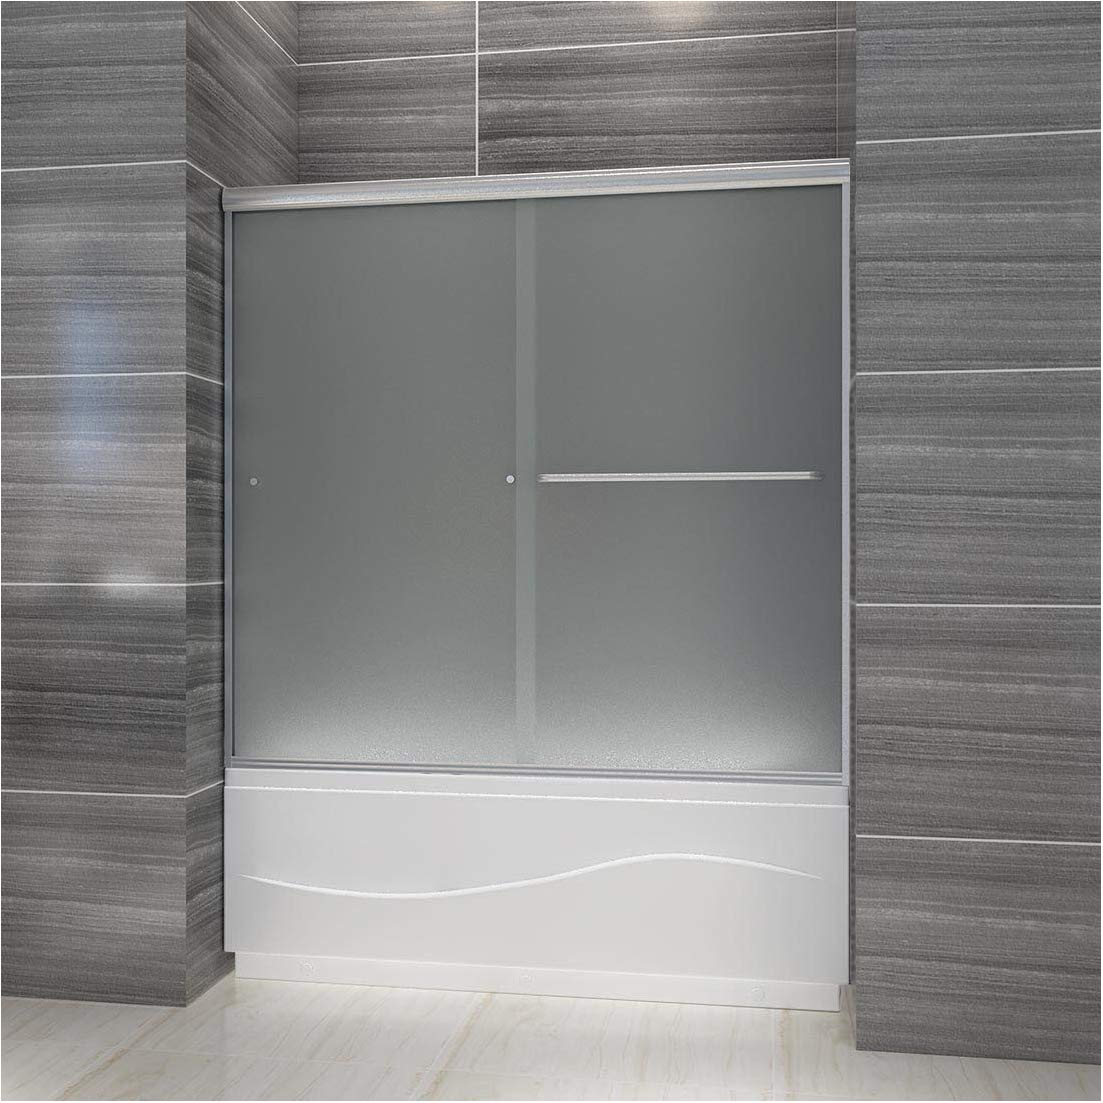 ELEGANT 58.5 in. – 60 in. W x 57 3 8 in. H Bypass Sliding Bathtub Door, 1 4 in. Frosted Shower Glass Panel Tub Glass Door, Brushed Nickel Finish